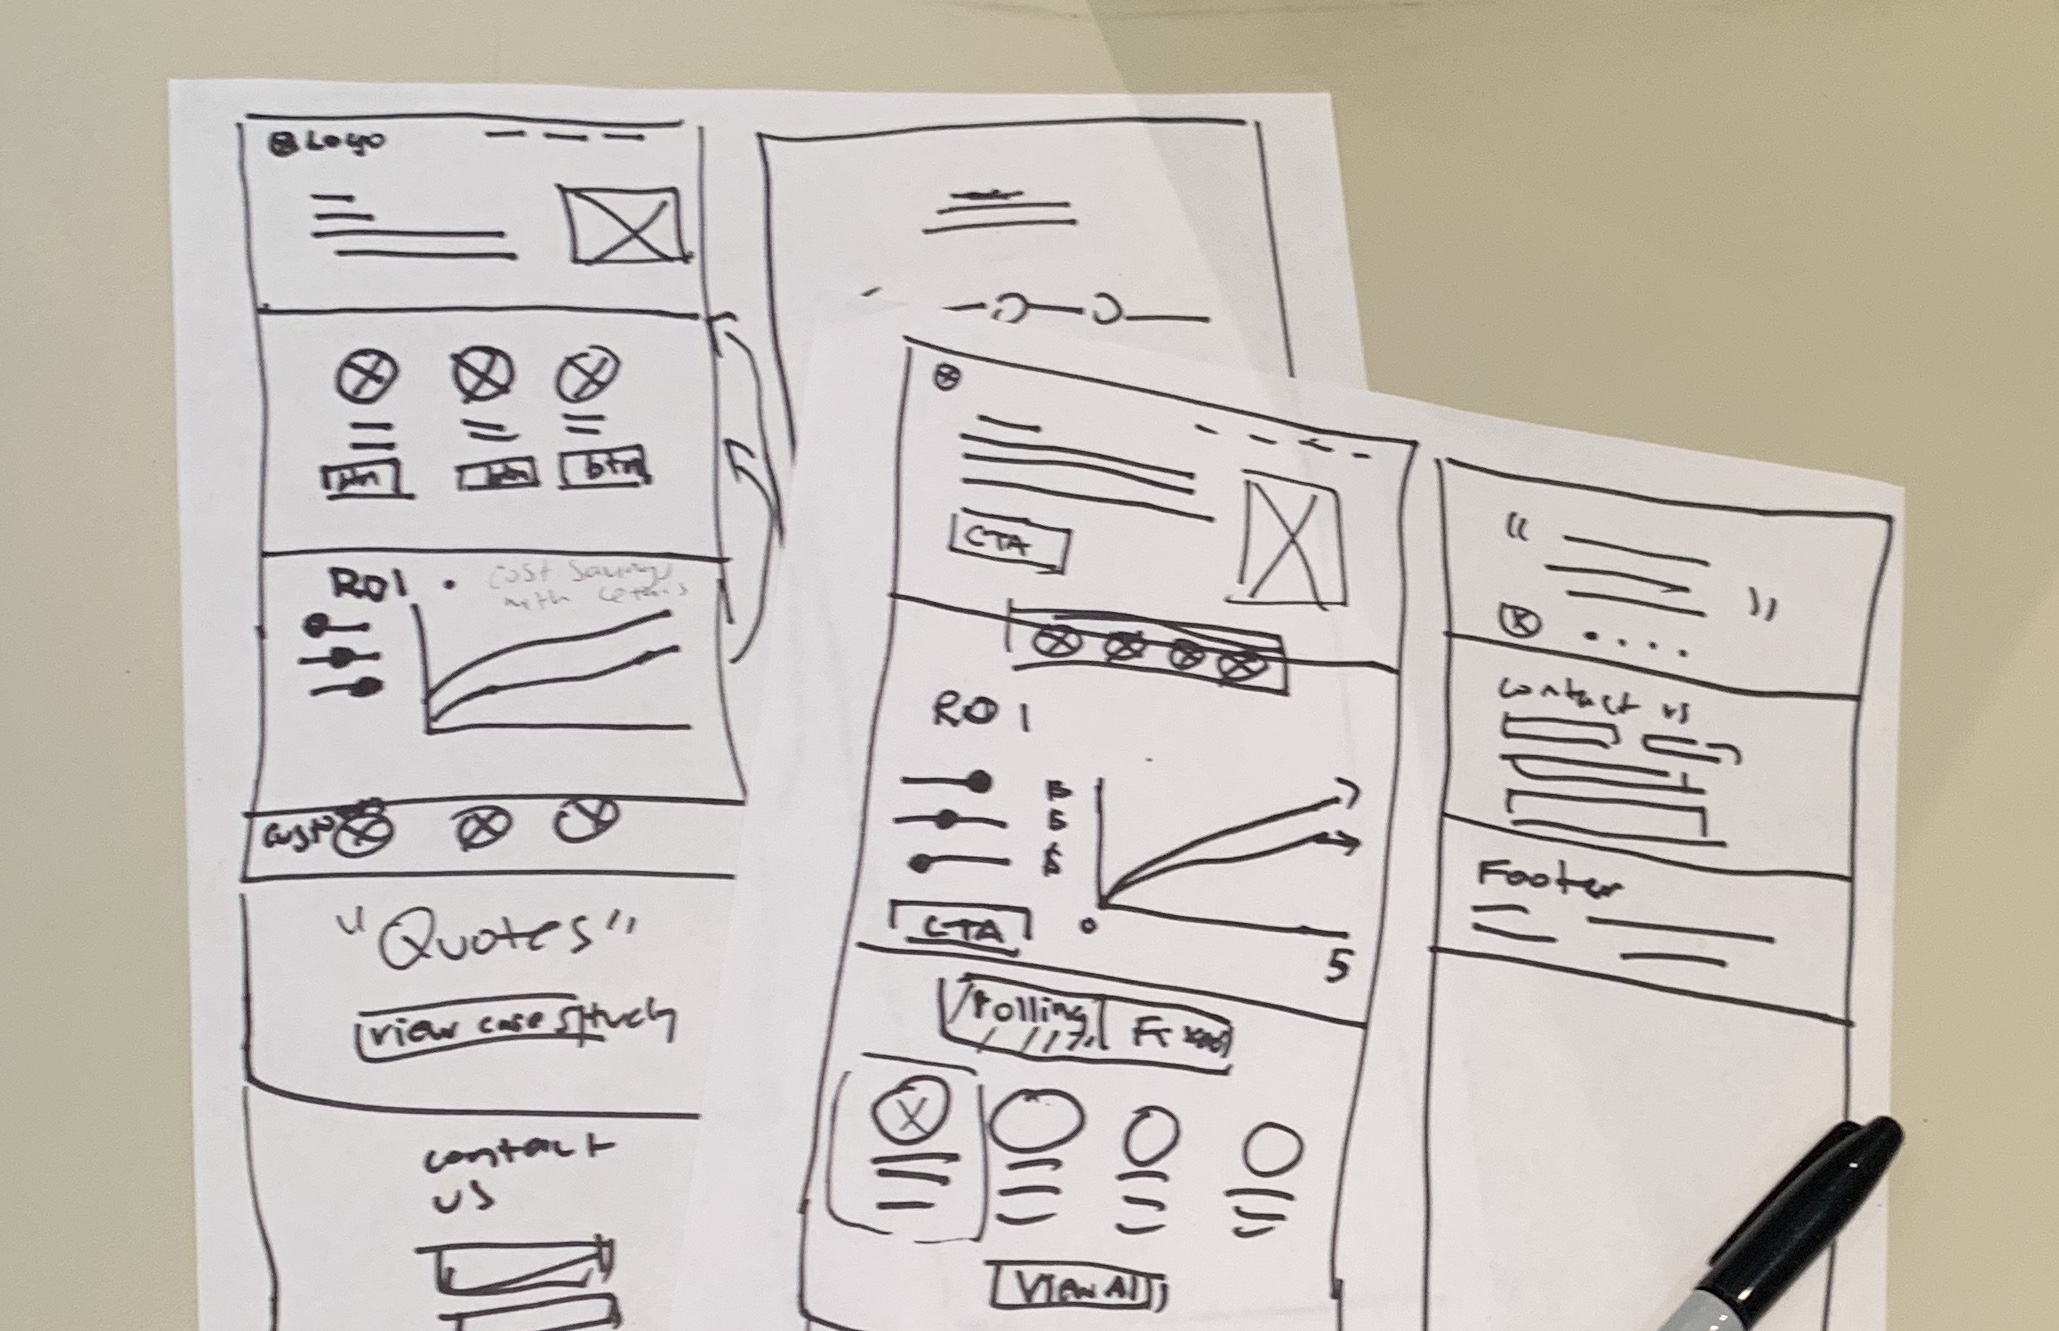 Sketch and wireframe of a website